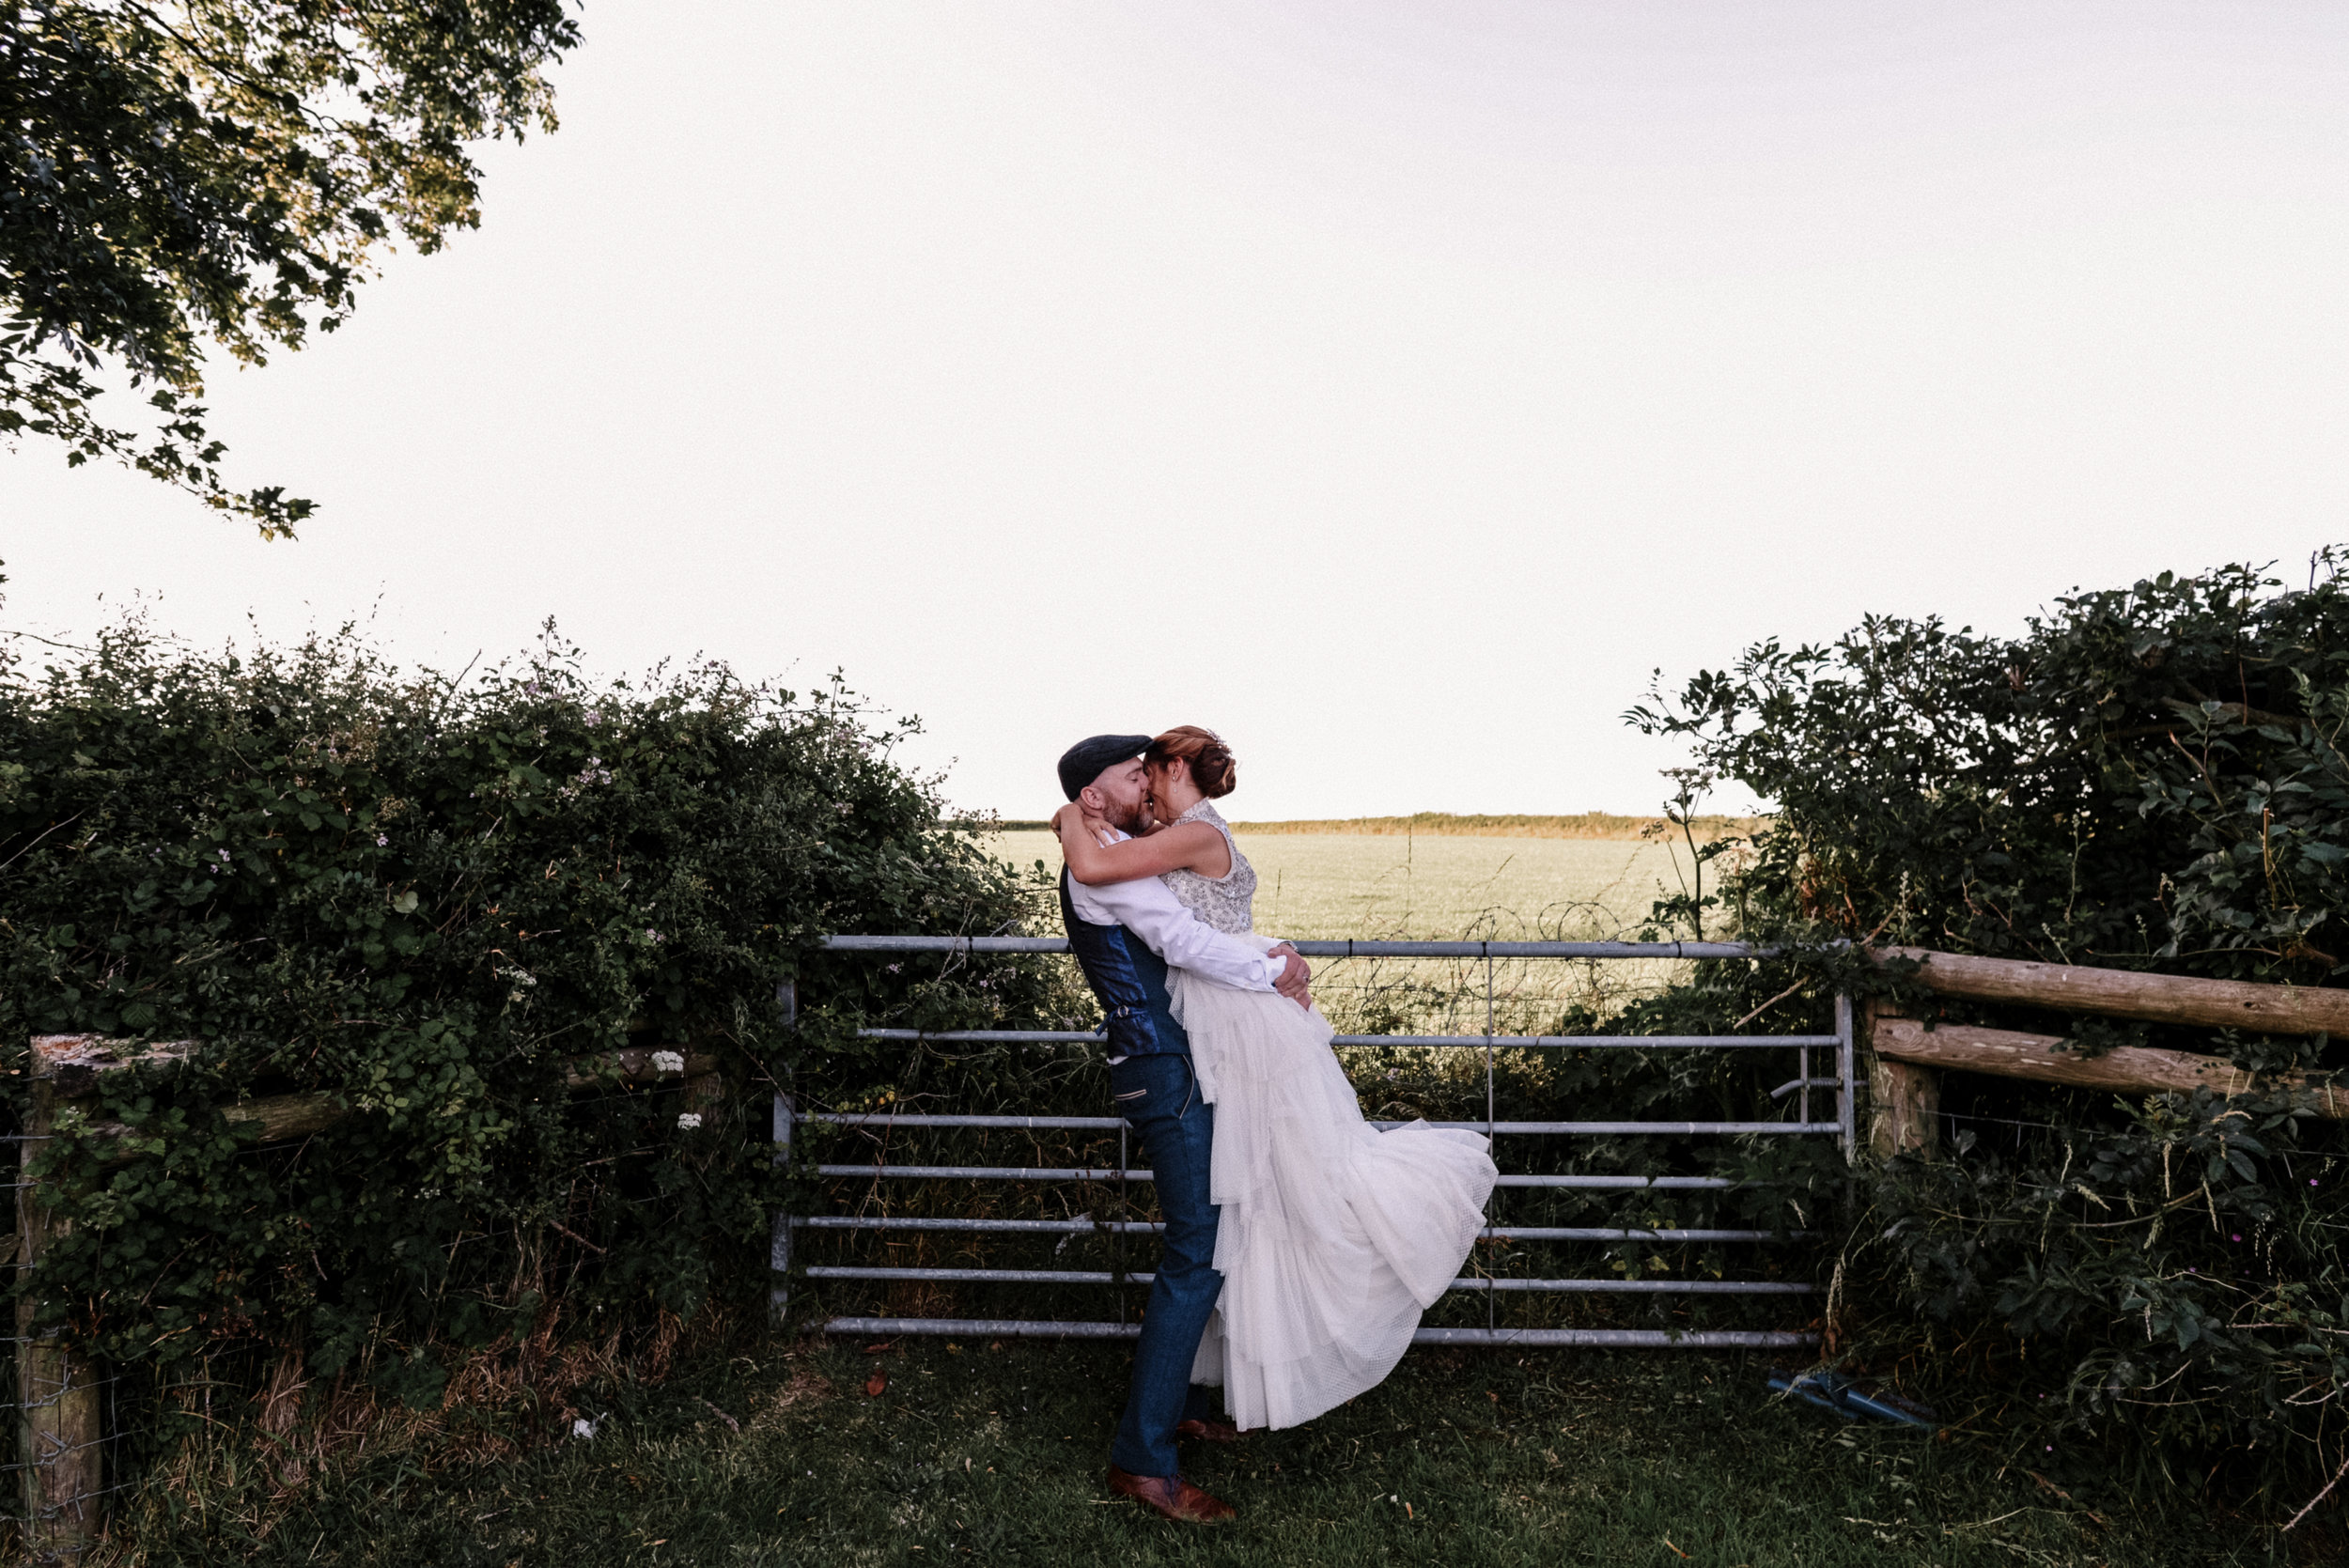 Highlights of Kris and Emma // A fun filled wedding at Woodhouse Barn - Pembrokeshire